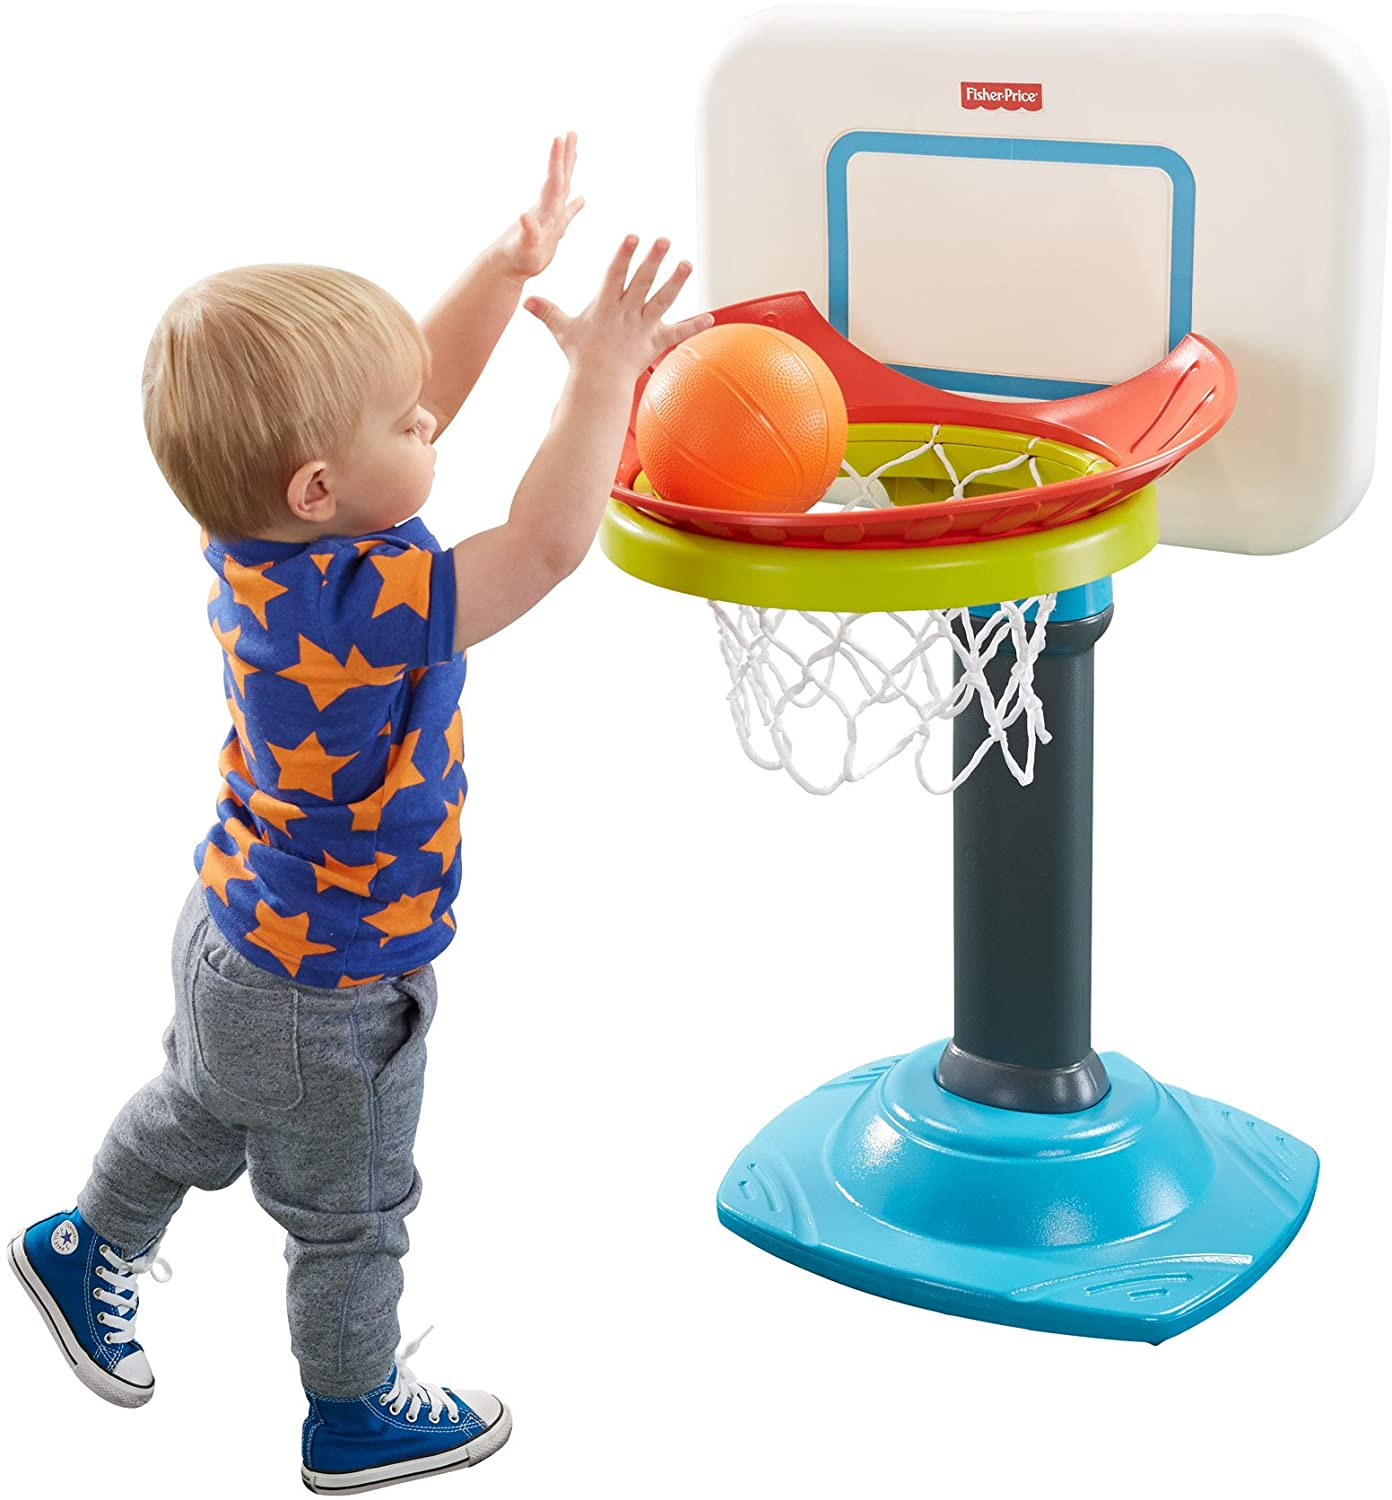 Amazon.com: Fisher-Price Grow-to-Pro Junior Basketball: Toys & Games